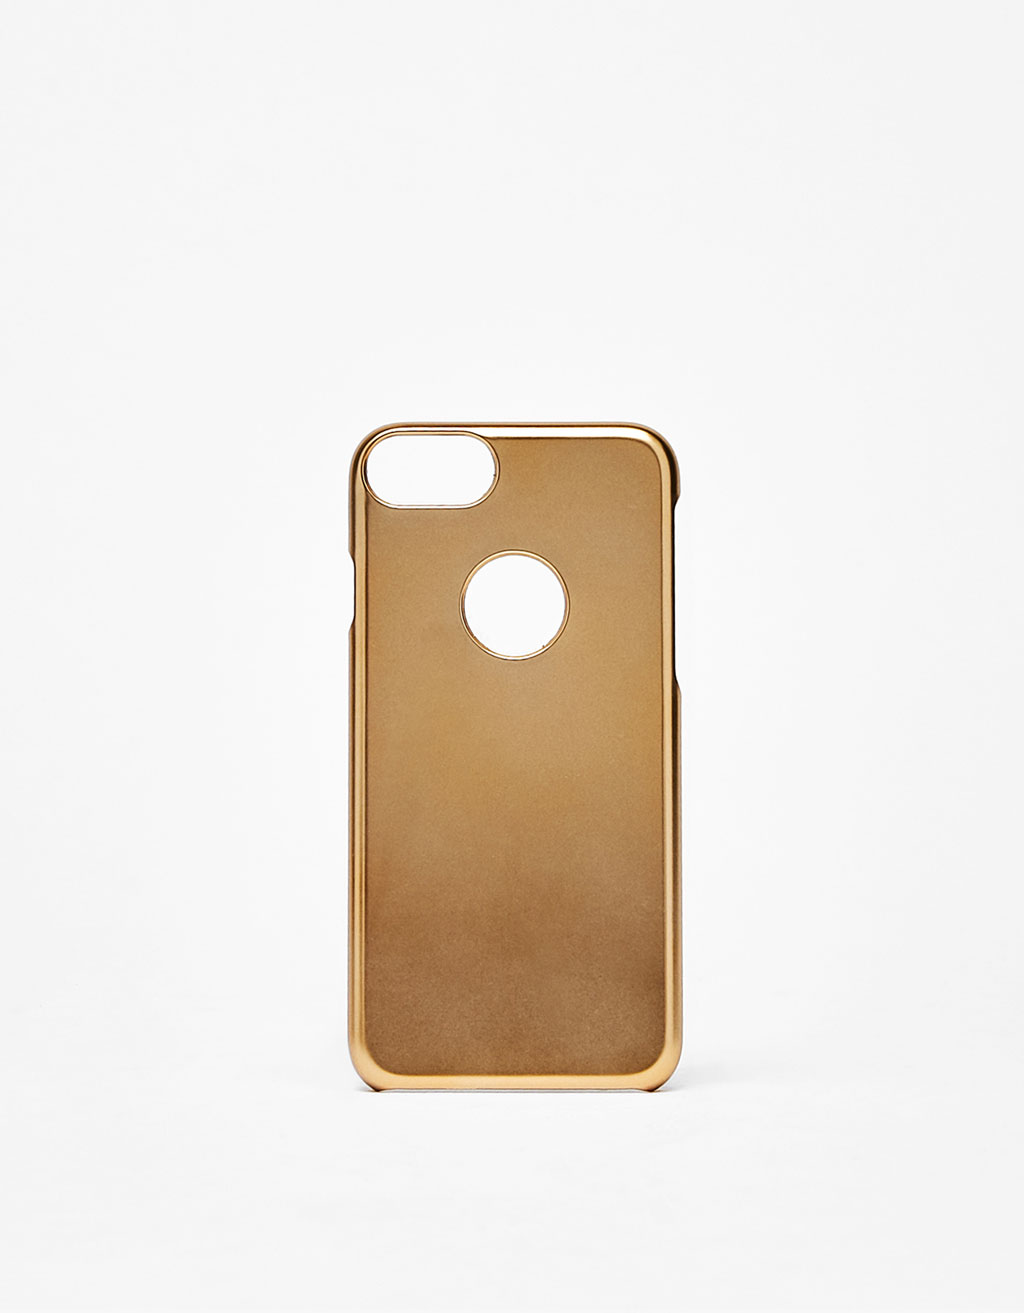 Metallic iPhone 6/6s/7 case